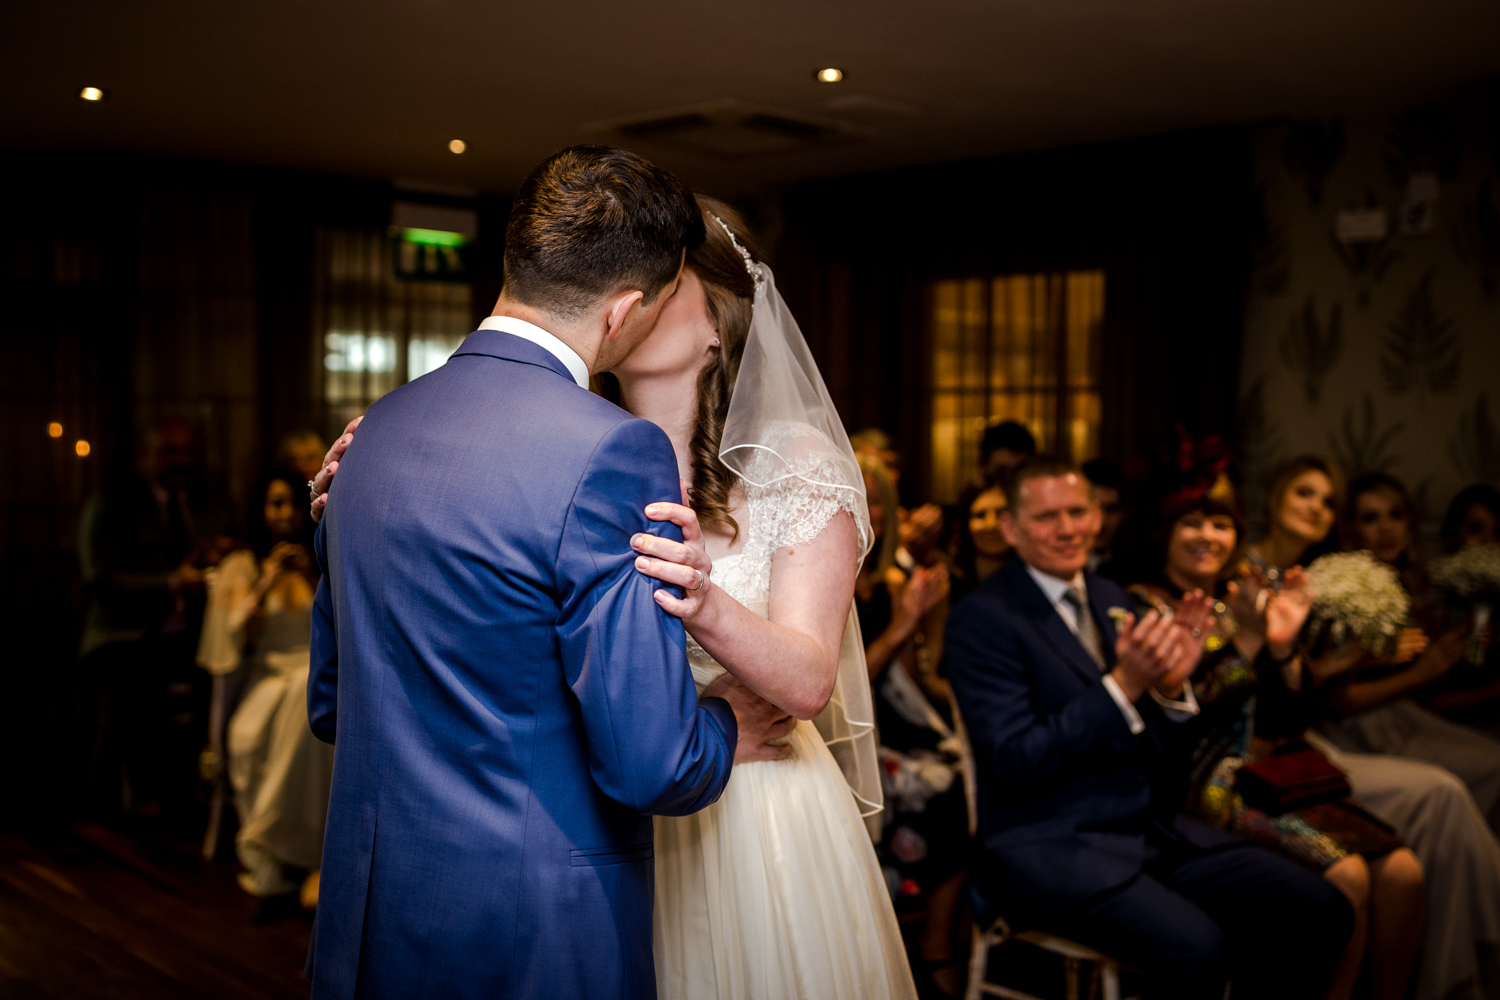 First kiss at Great John Street Hotel in Manchester